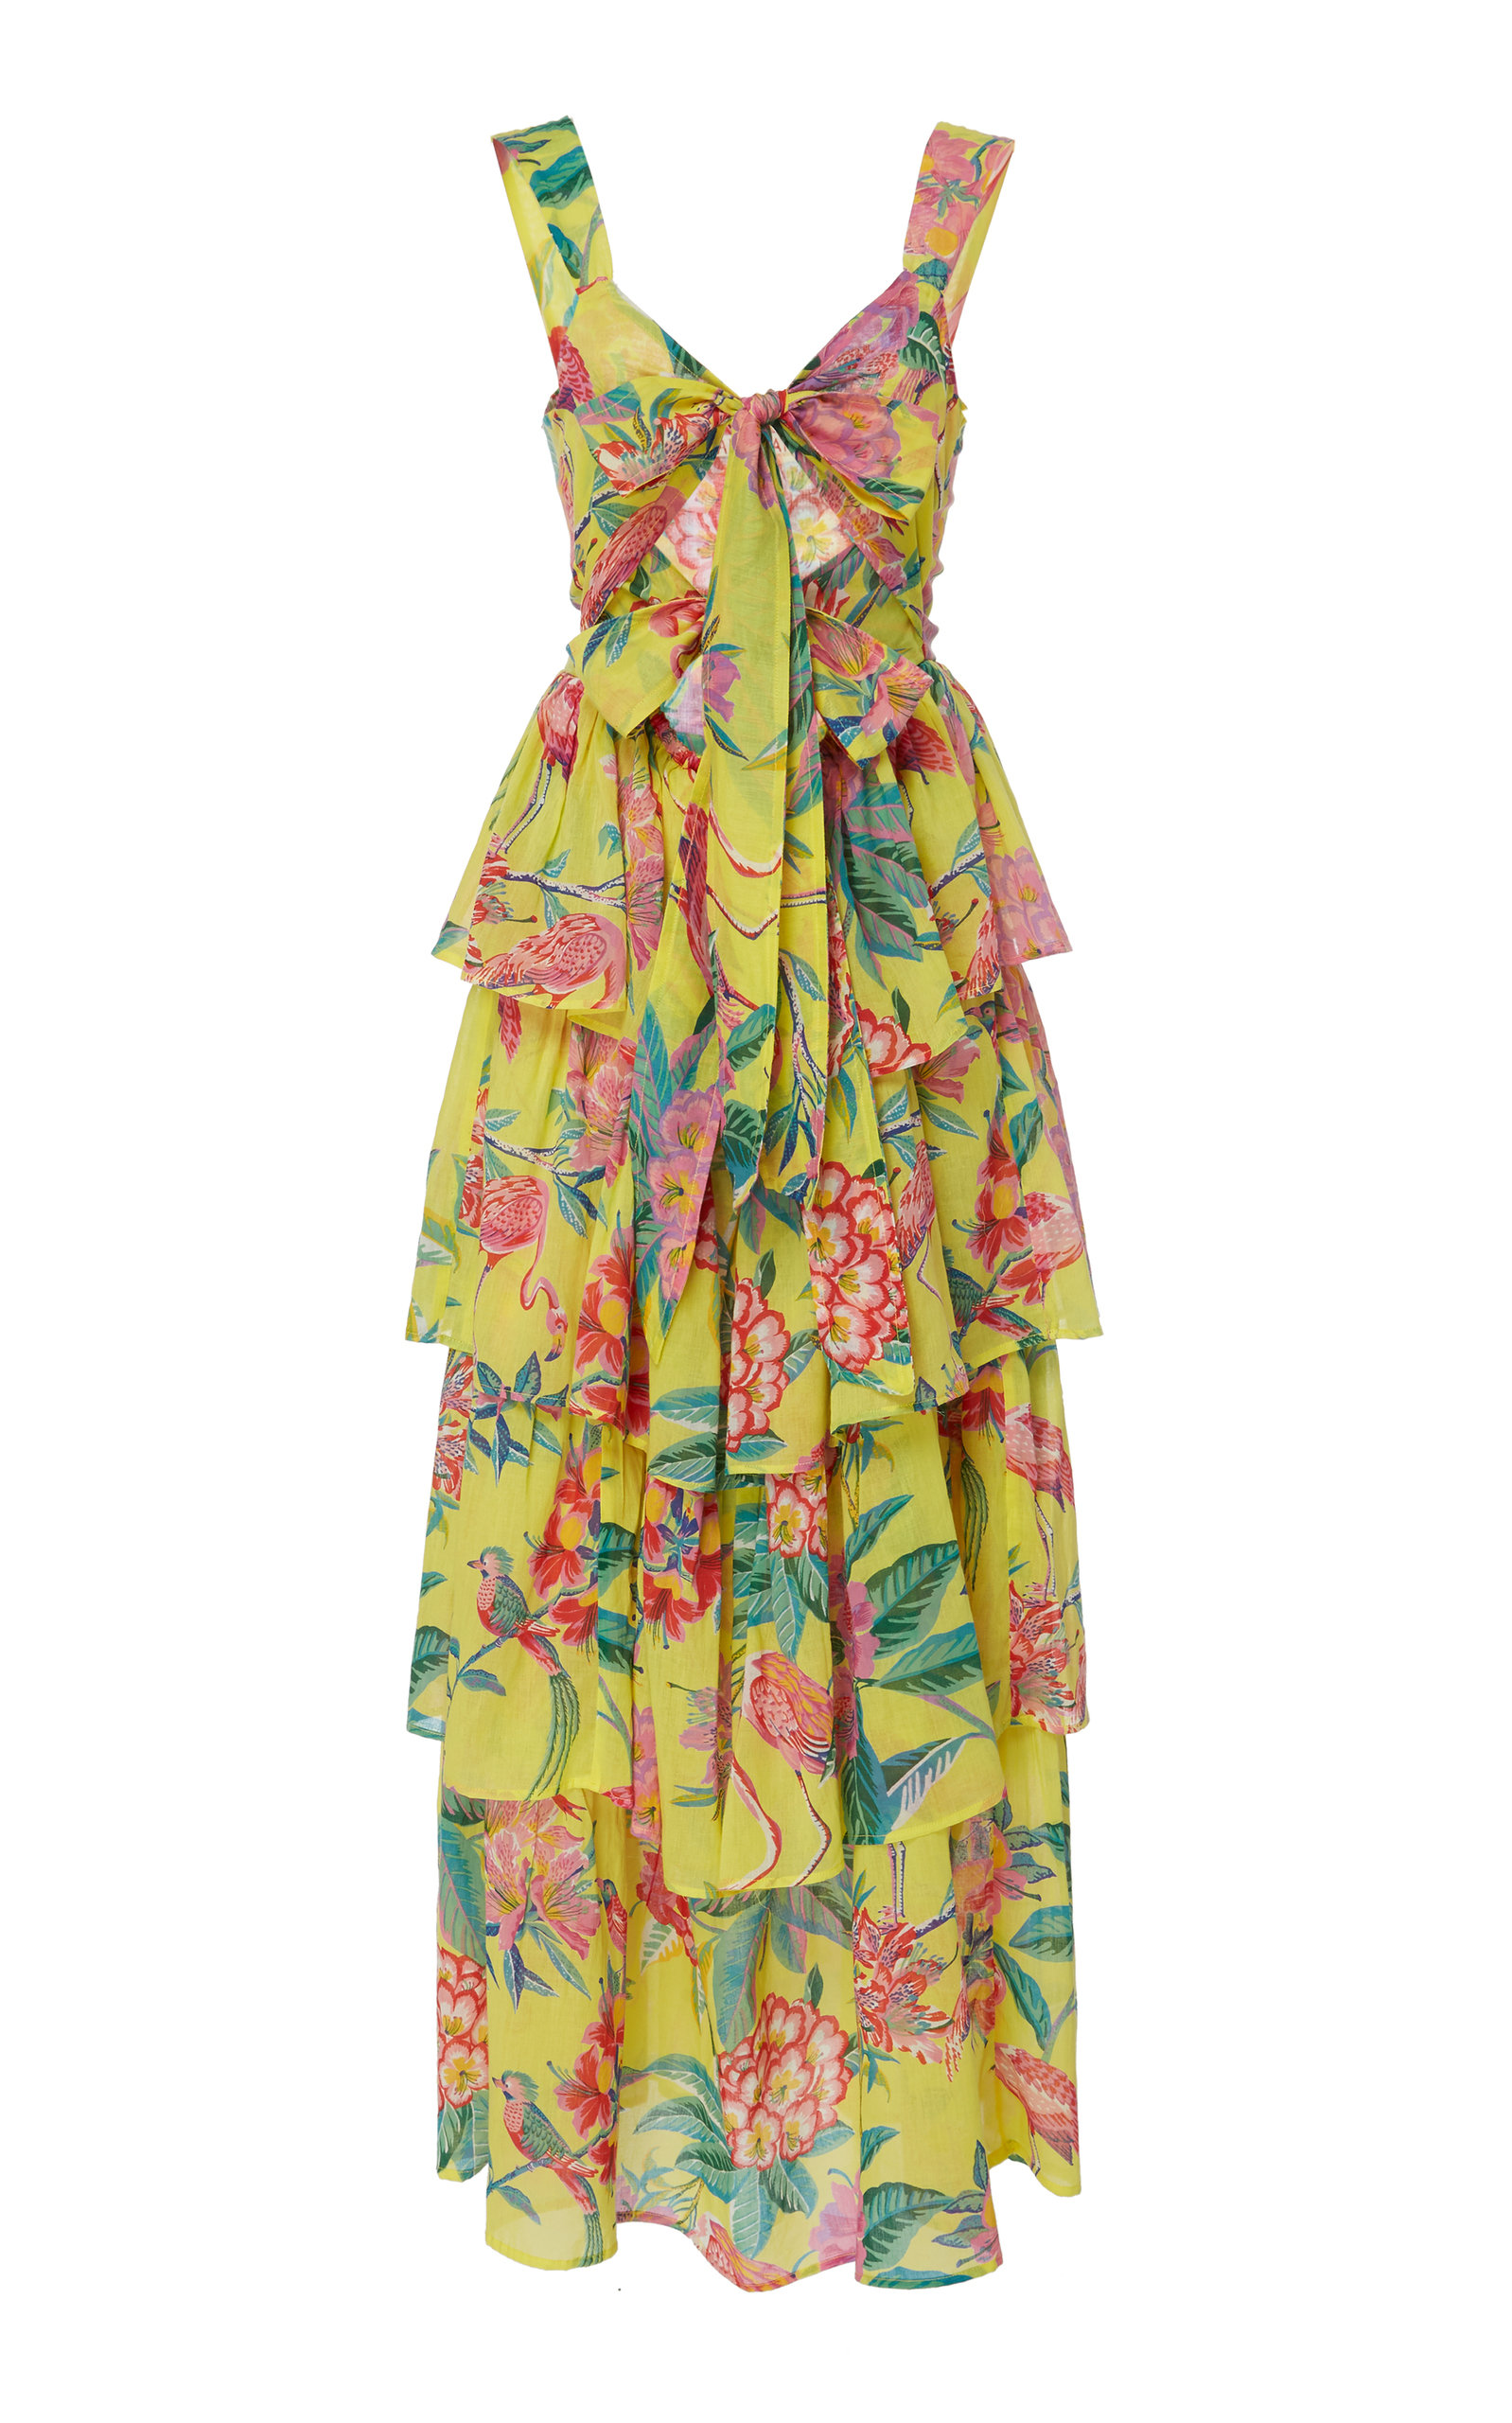 BANJANAN Aster Cotton Voile Tropical Dress in Yellow